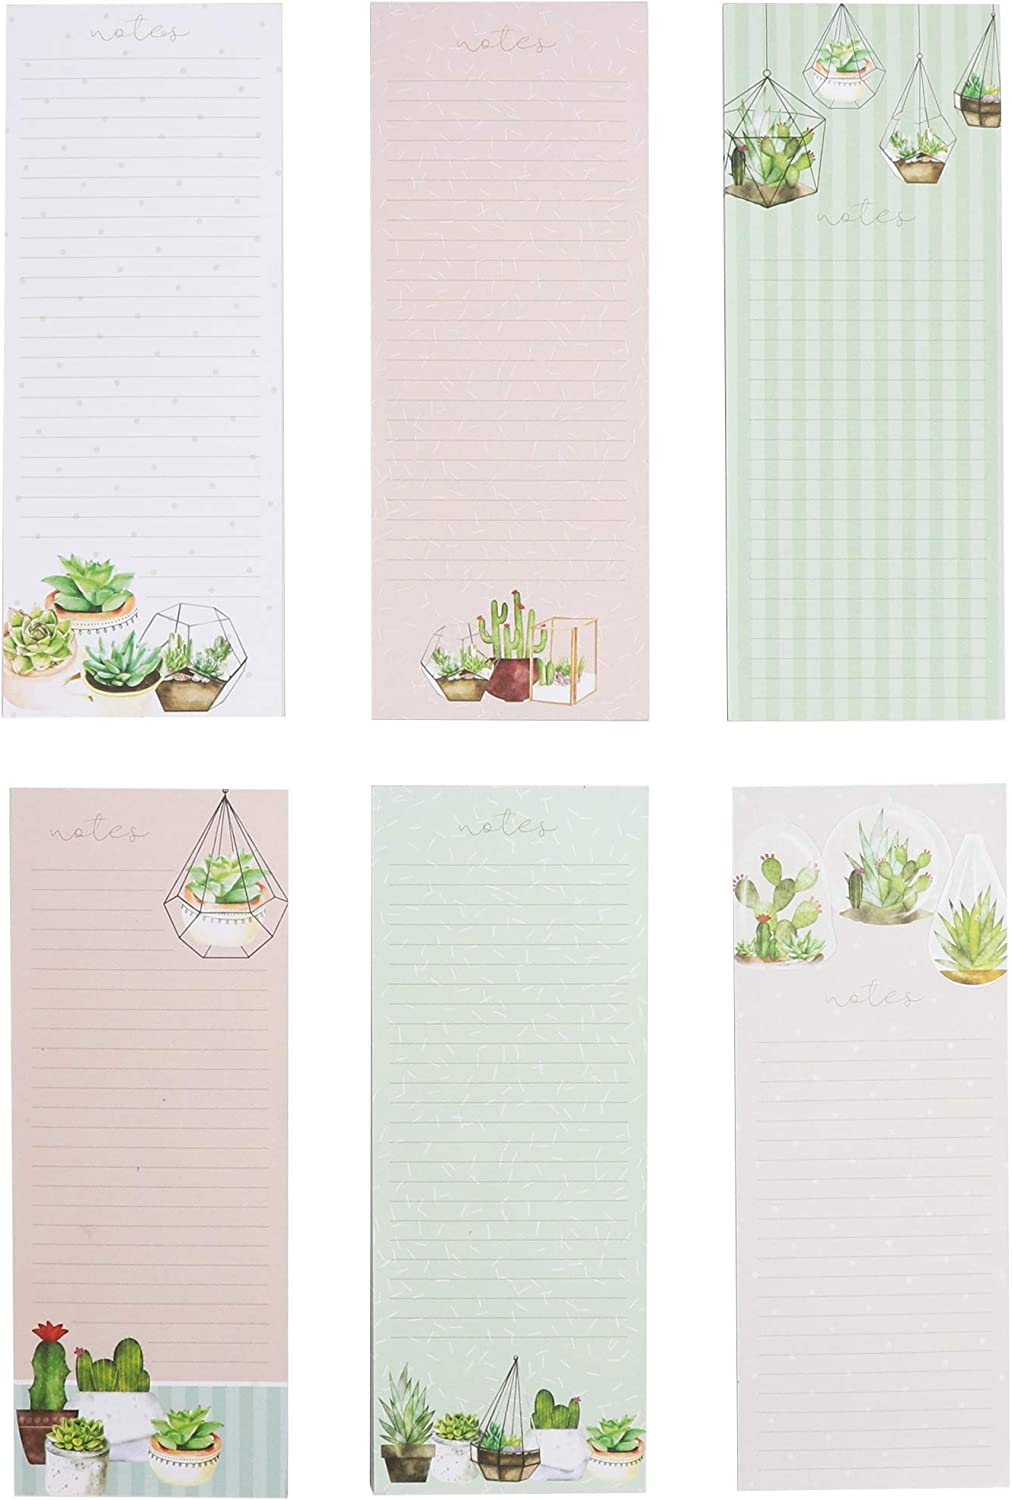 Paper Junkie Succulents Magnetic Notepads for Refrigerator (12 Pack) 3.5 x 9 Inches, 6 Designs